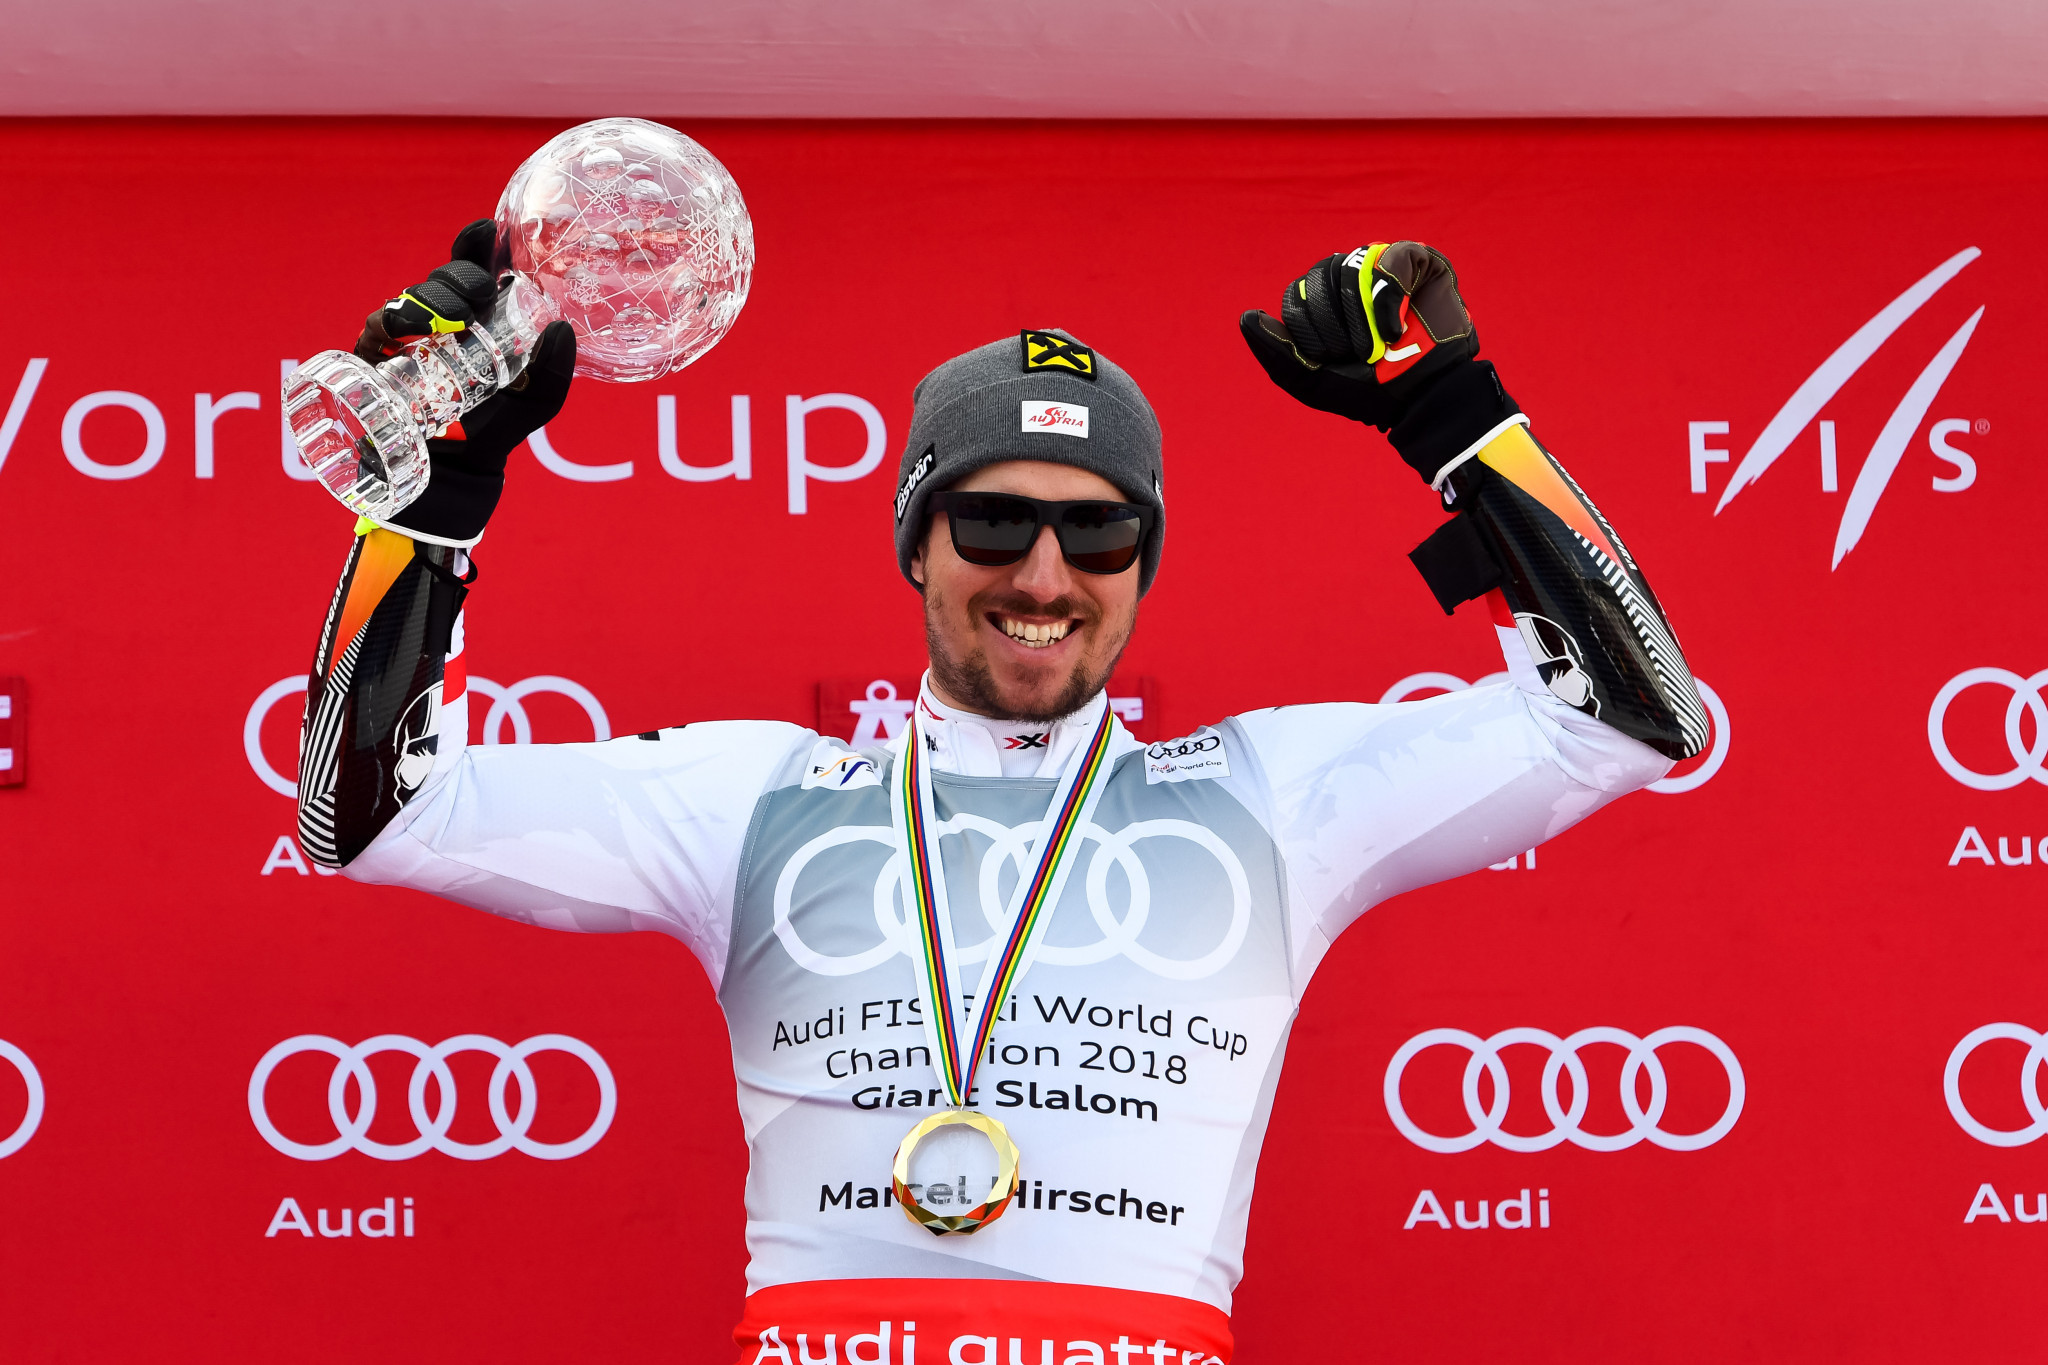 Hirscher wins overall giant slalom title at World Cup Final in Åre